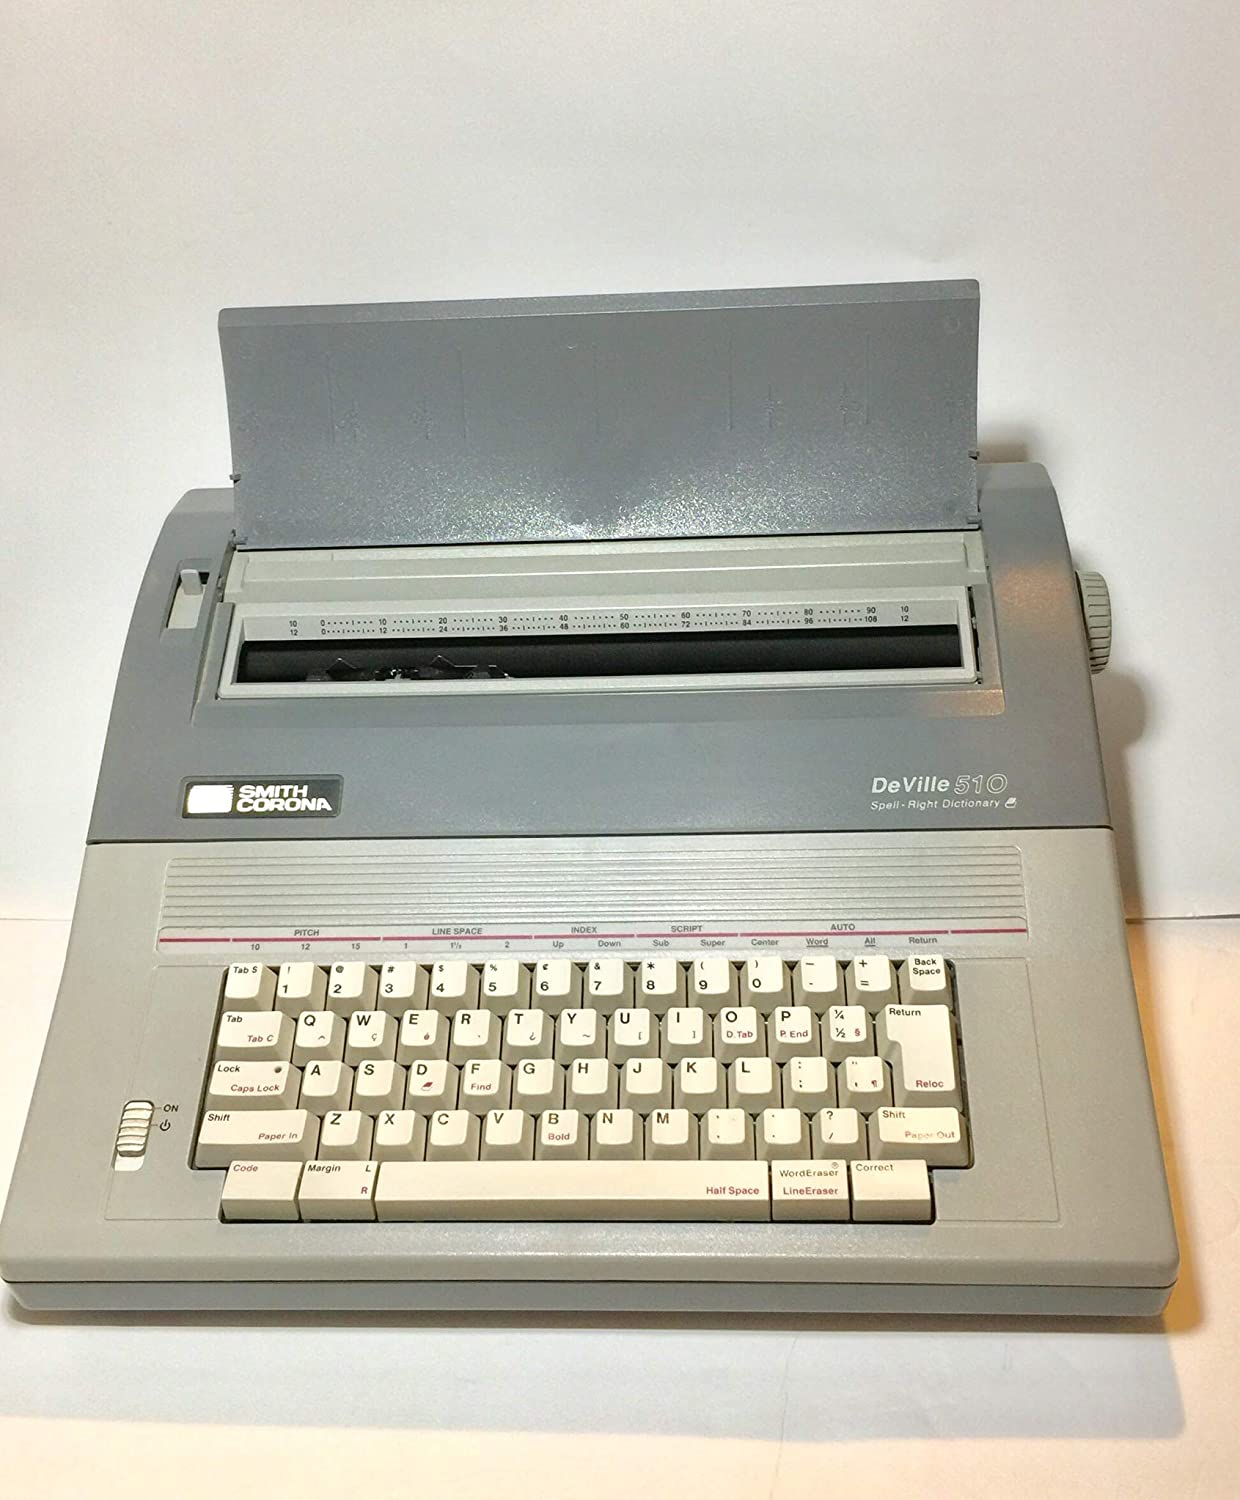 Smith Corona DeVille 510 Electric Typewriter Spell Right Dictionary Works